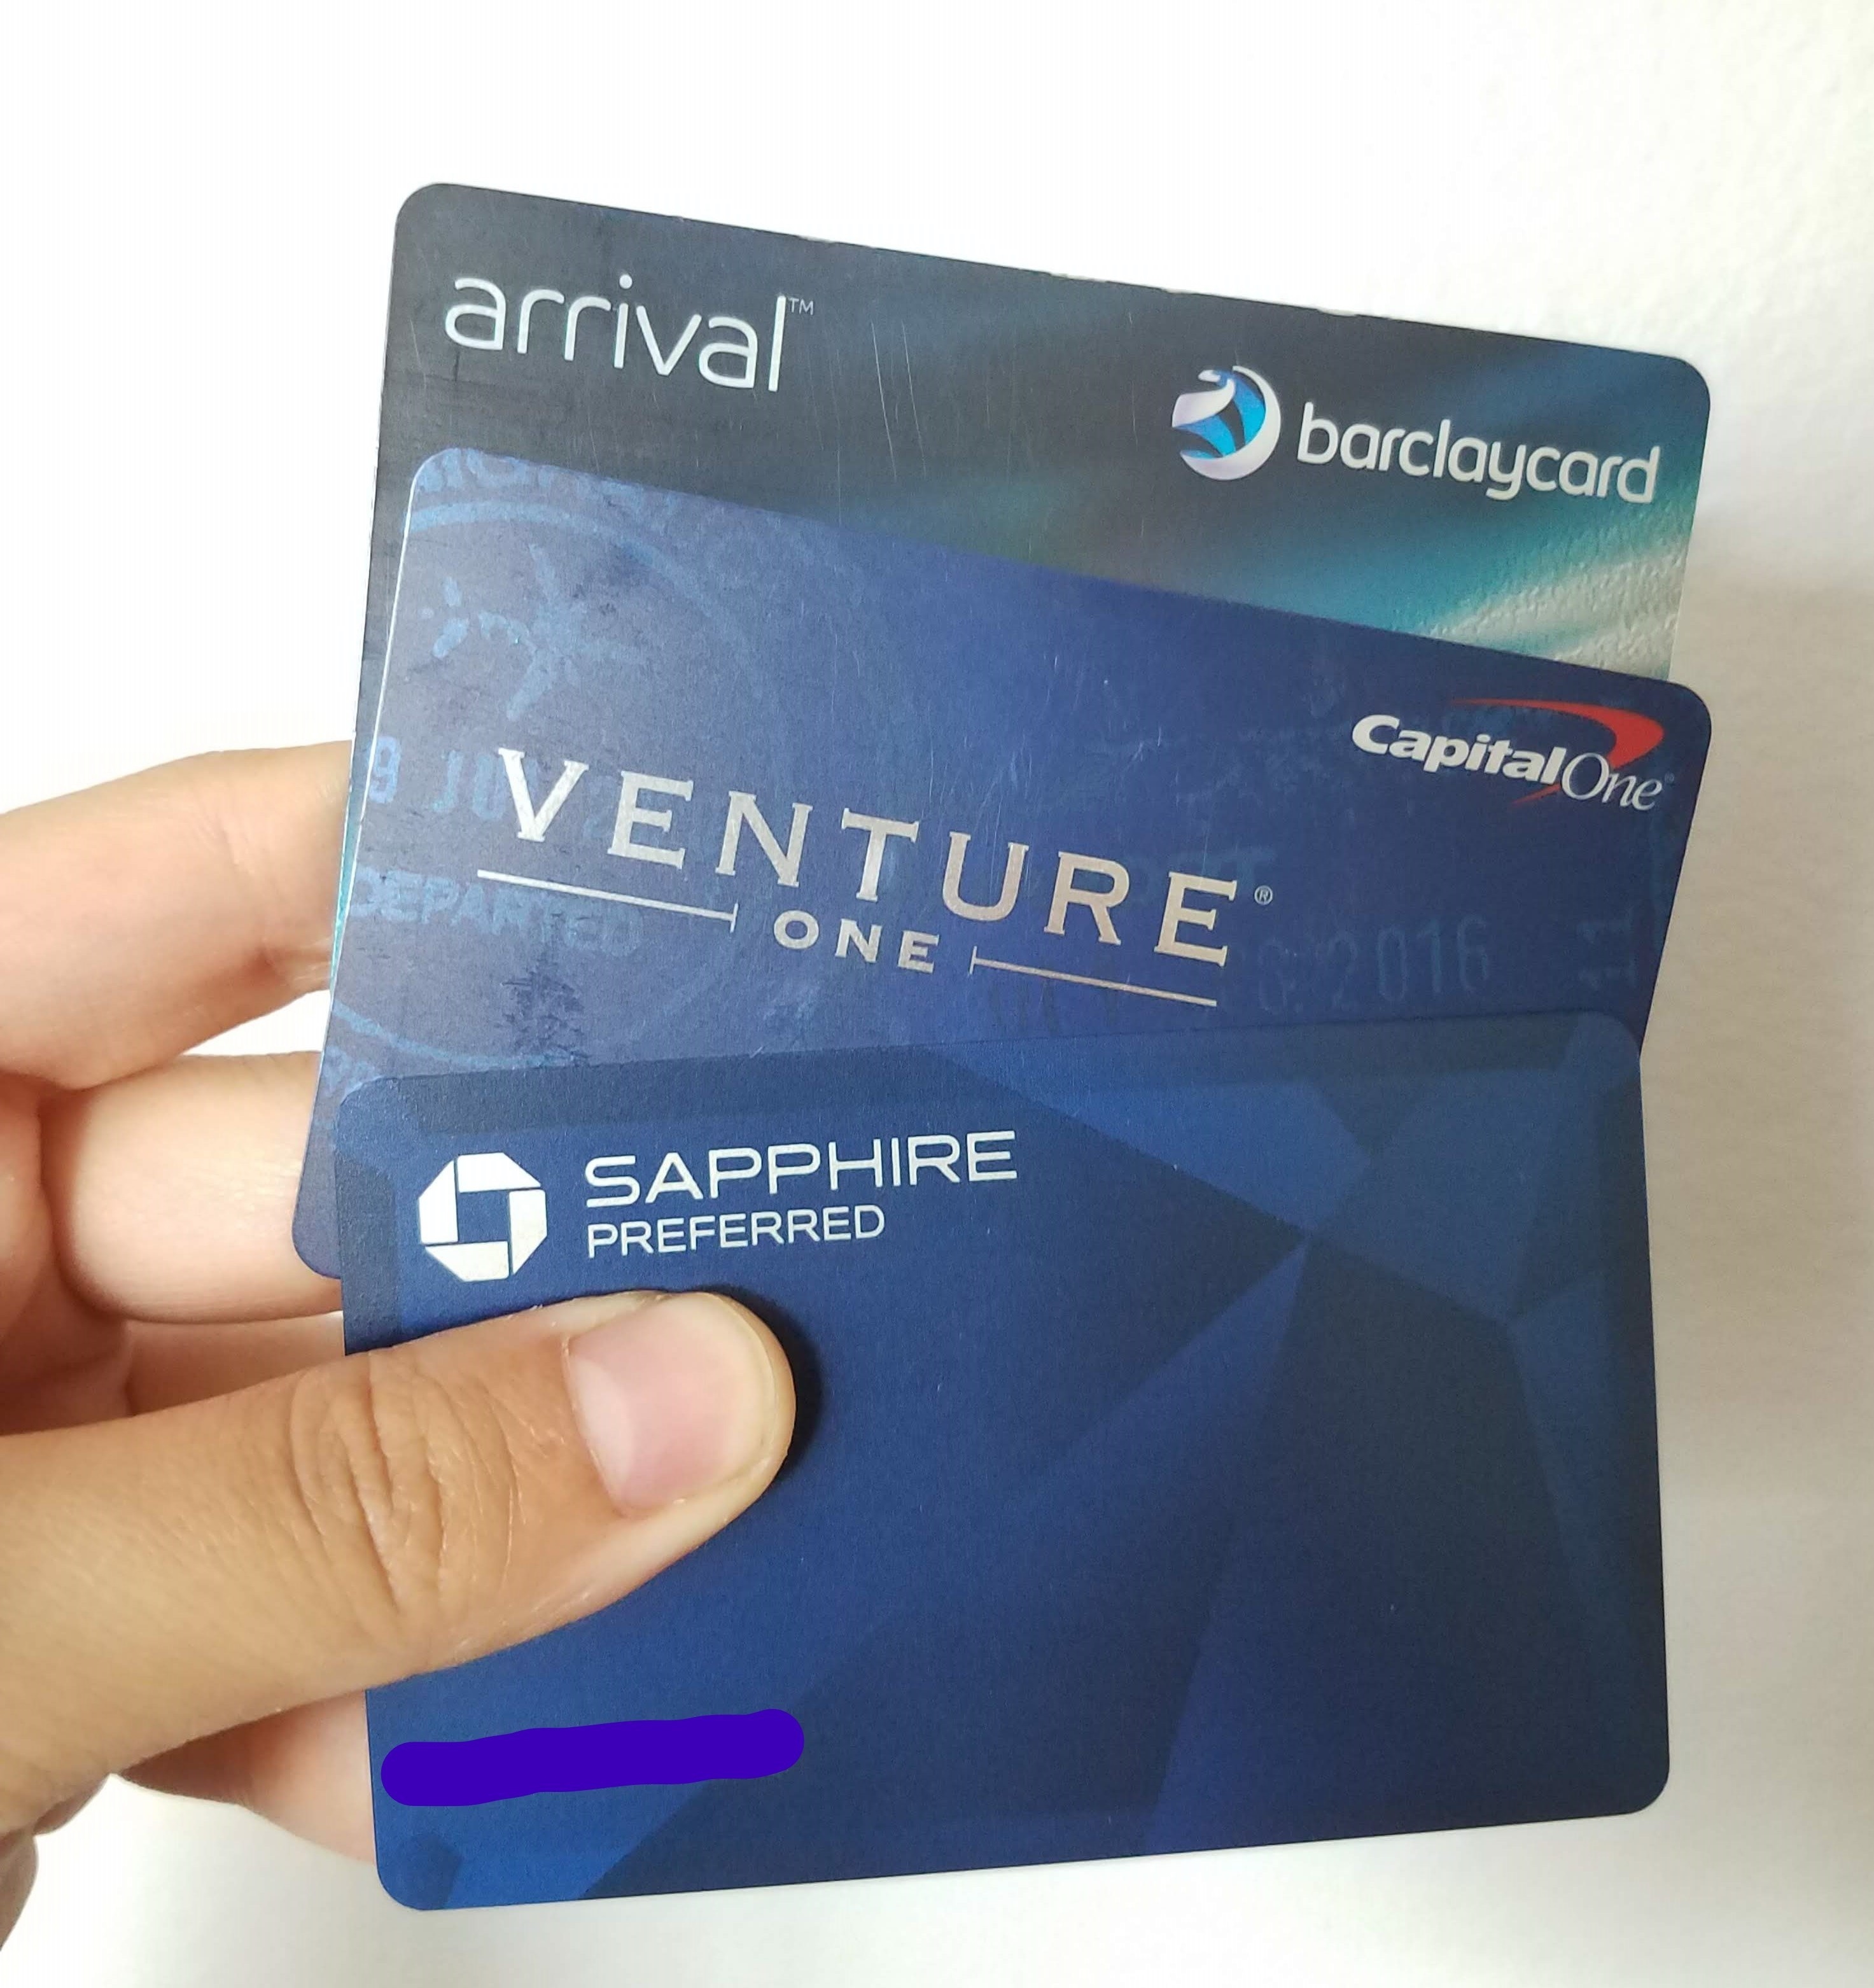 3 credit cards: Barclay Arrival, Capital One Venture, and Chase Sapphire